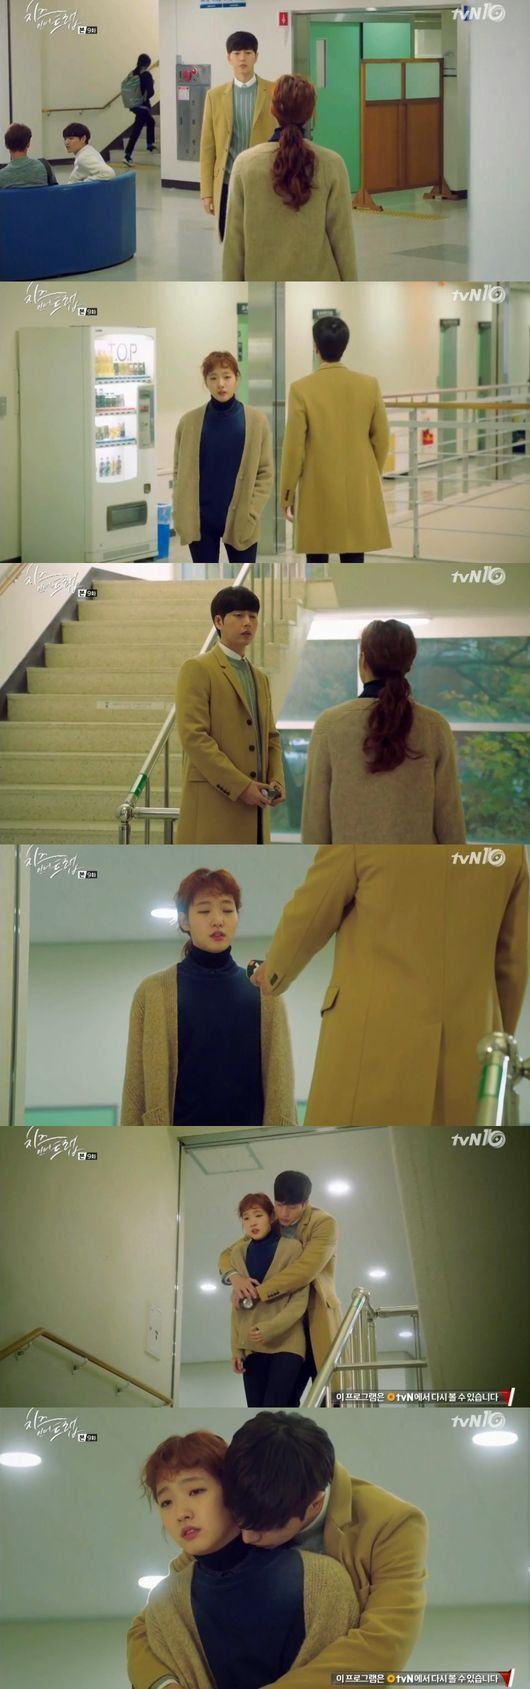 Drama 2016] Cheese In The Trap 치즈 인 더 트랩 - Page 680 - k-dramas